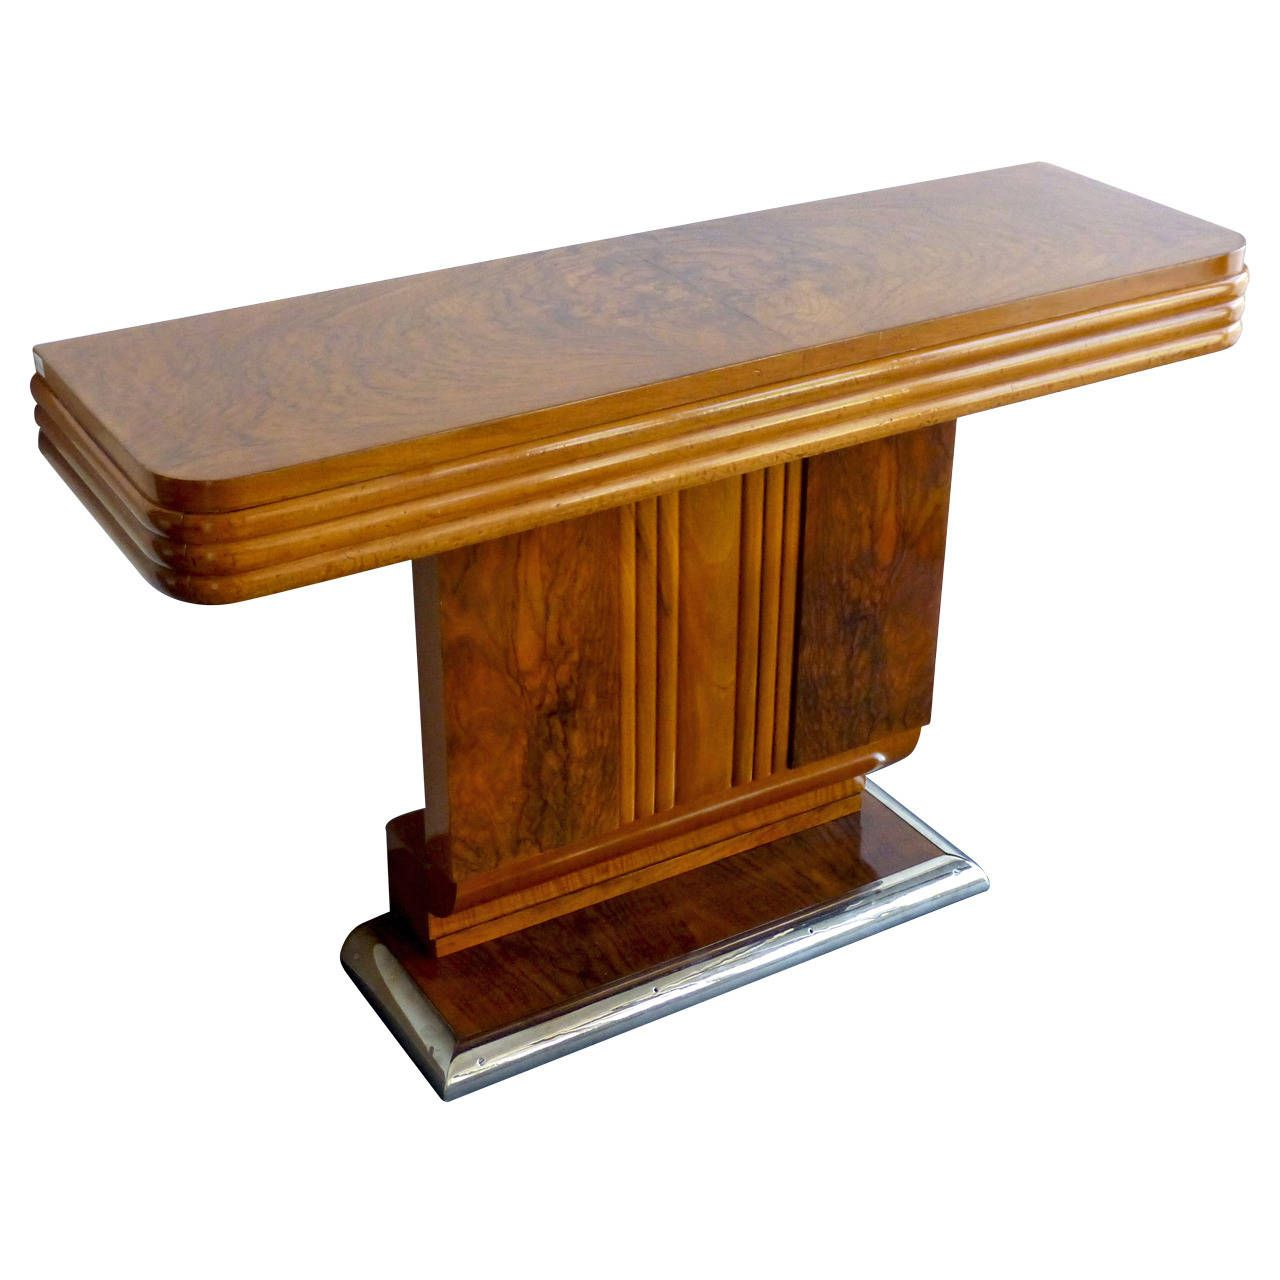 Art Deco console | Art deco, Console tables and Consoles